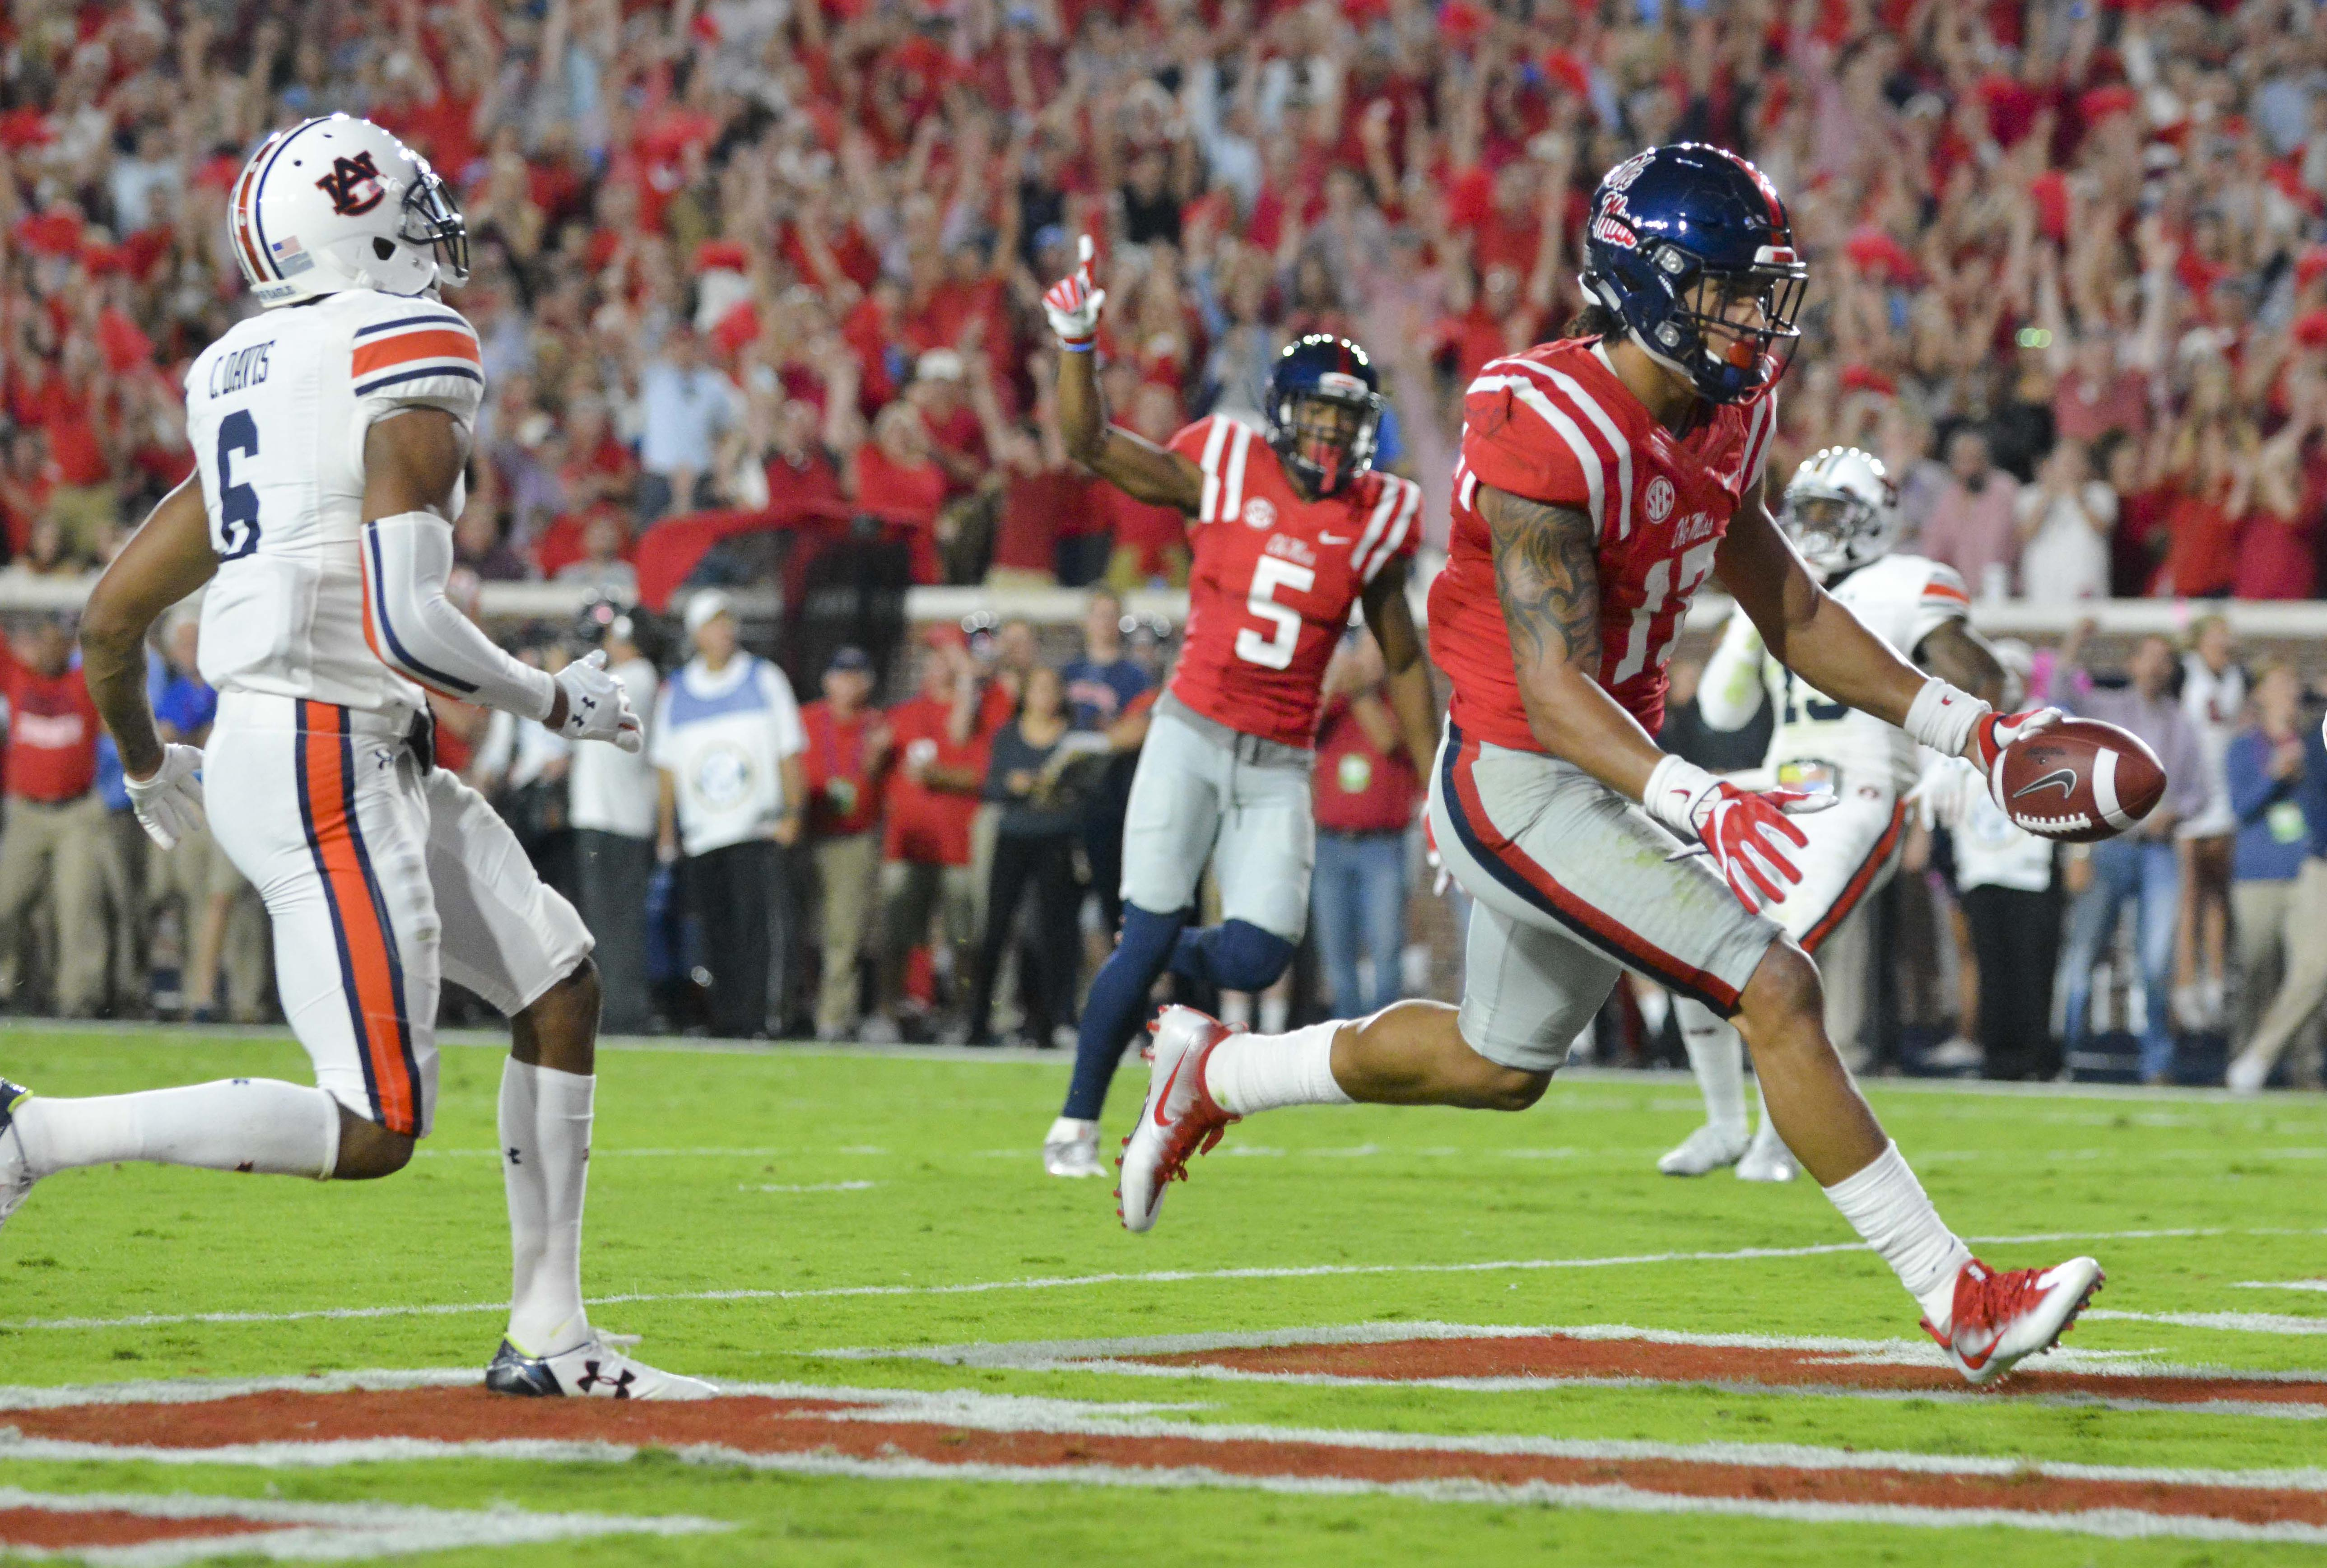 Oct 29, 2016; Oxford, MS, USA; Mississippi Rebels tight end Evan Engram (17) scores a touchdown during the first quarter of the game against the Auburn Tigers at Vaught-Hemingway Stadium. Mandatory Credit: Matt Bush-USA TODAY Sports